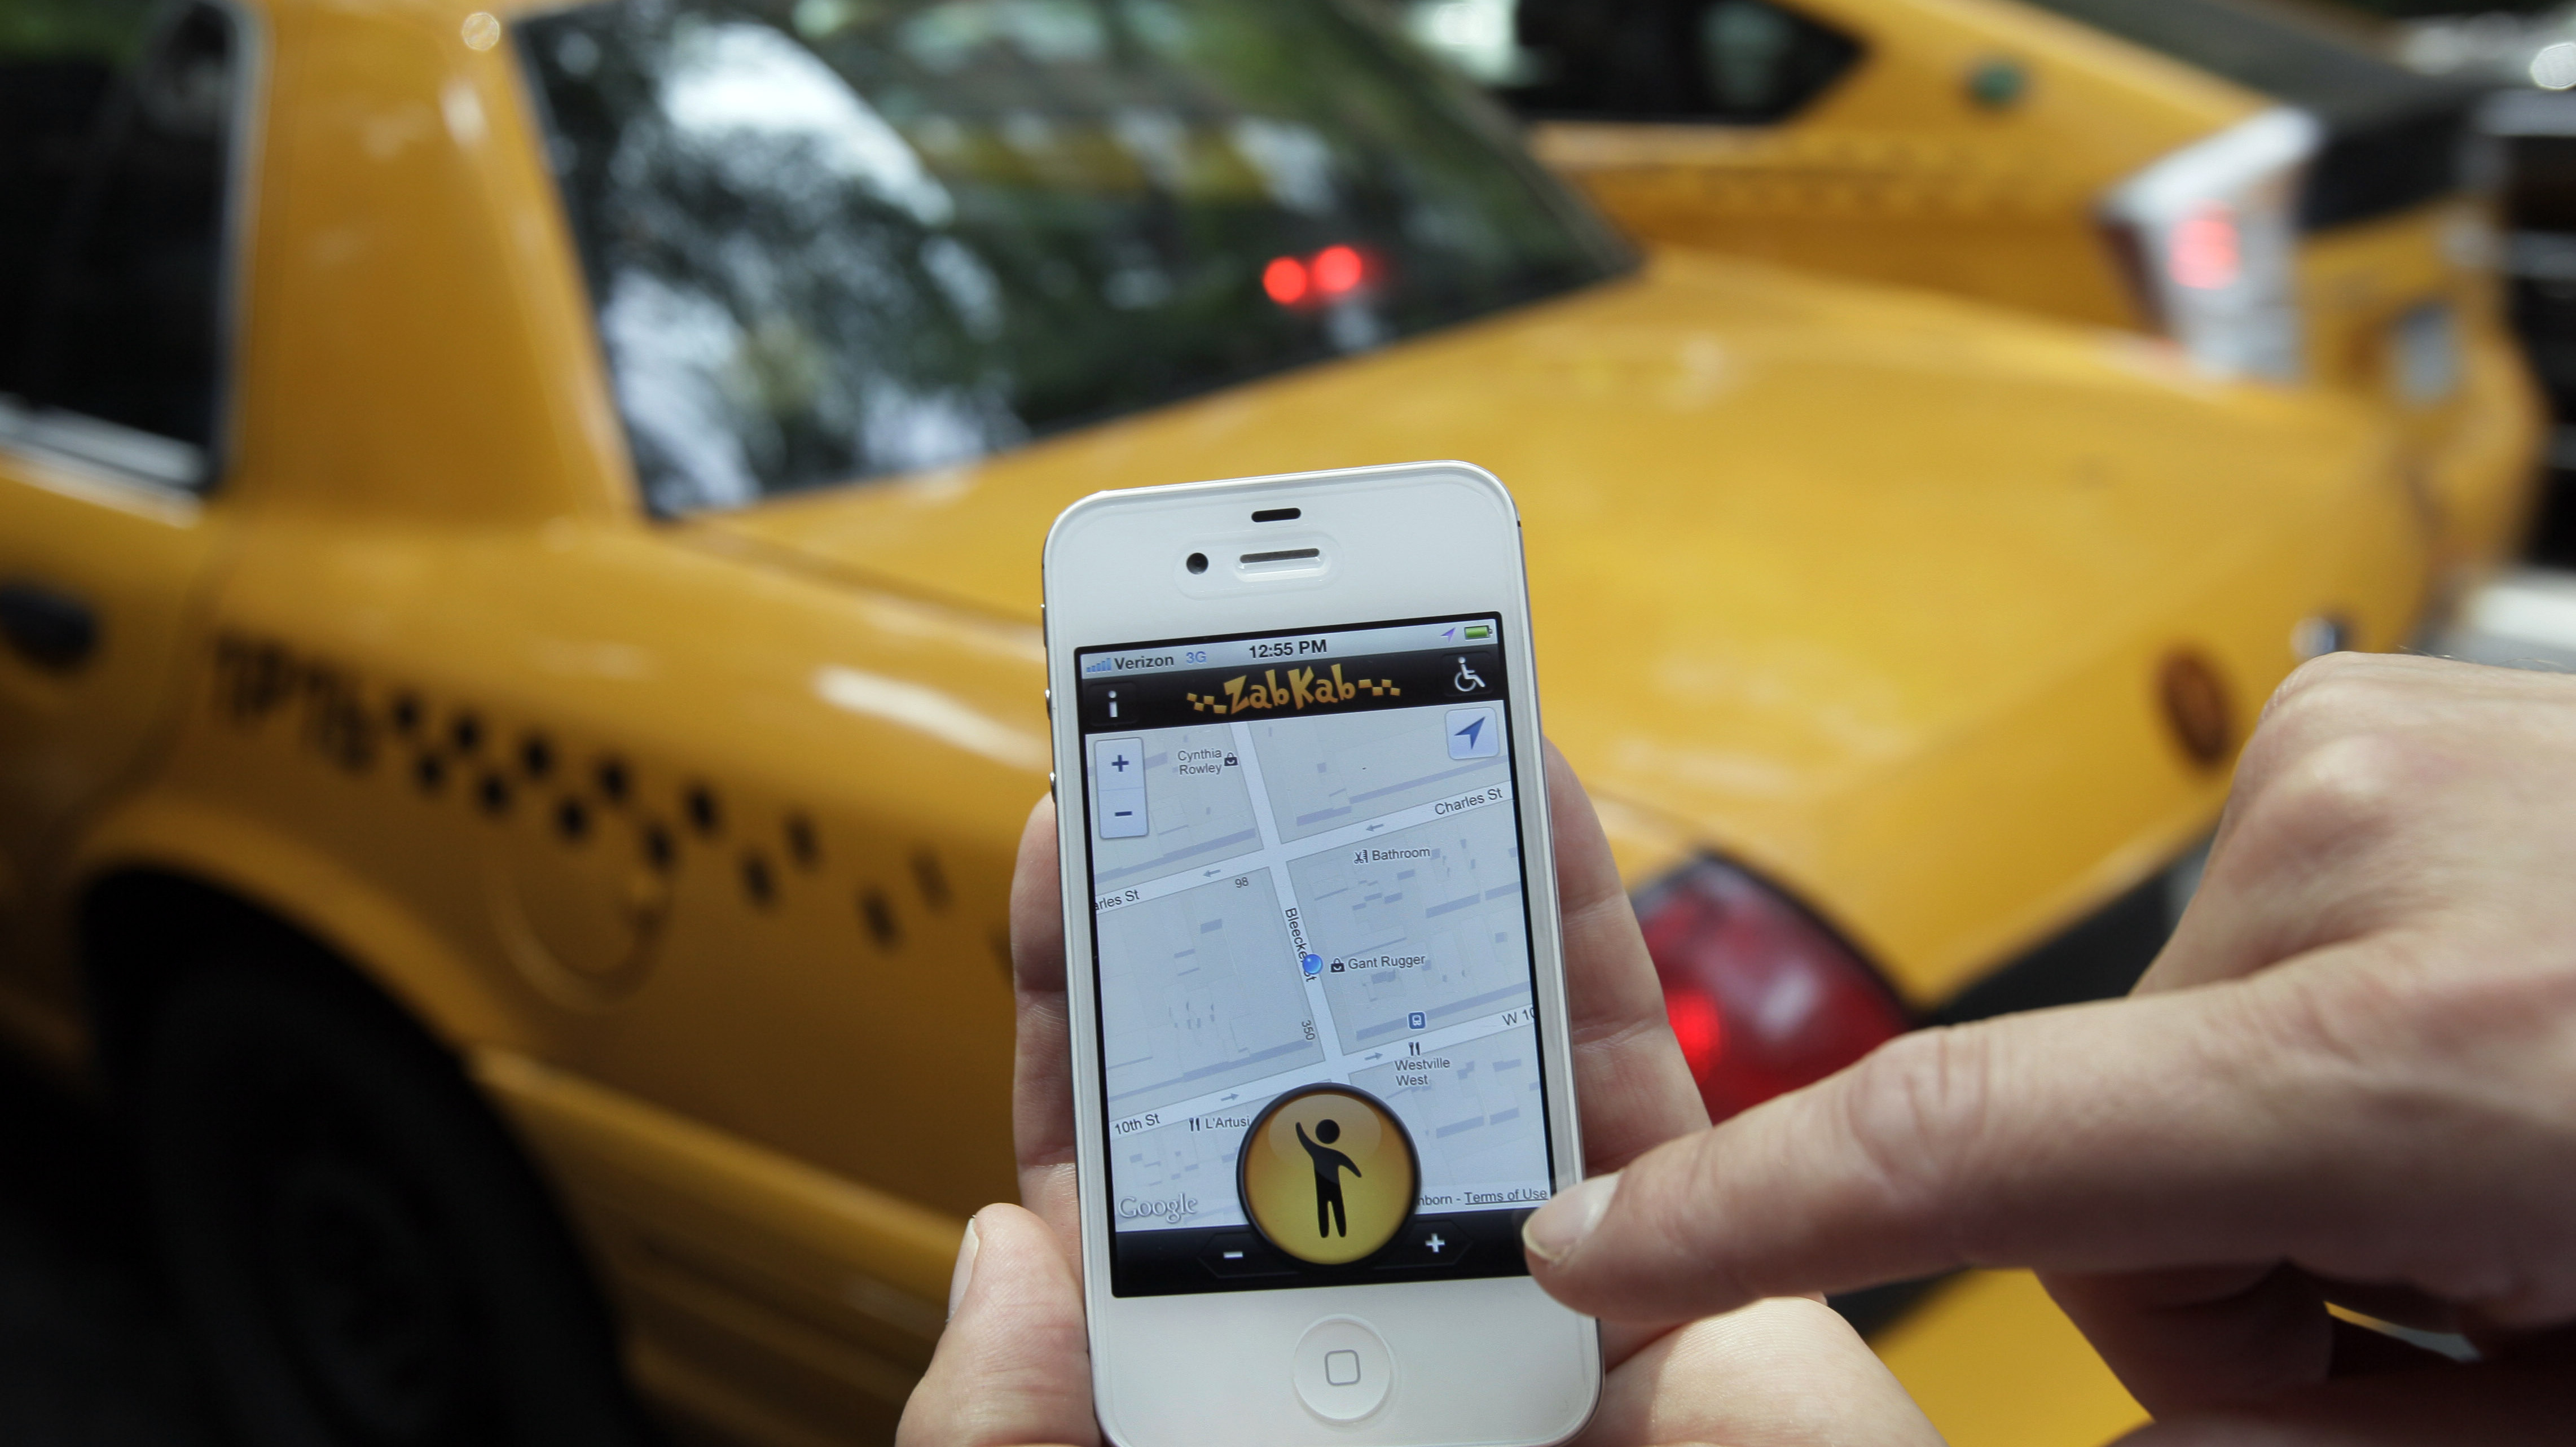 Use taxi apps